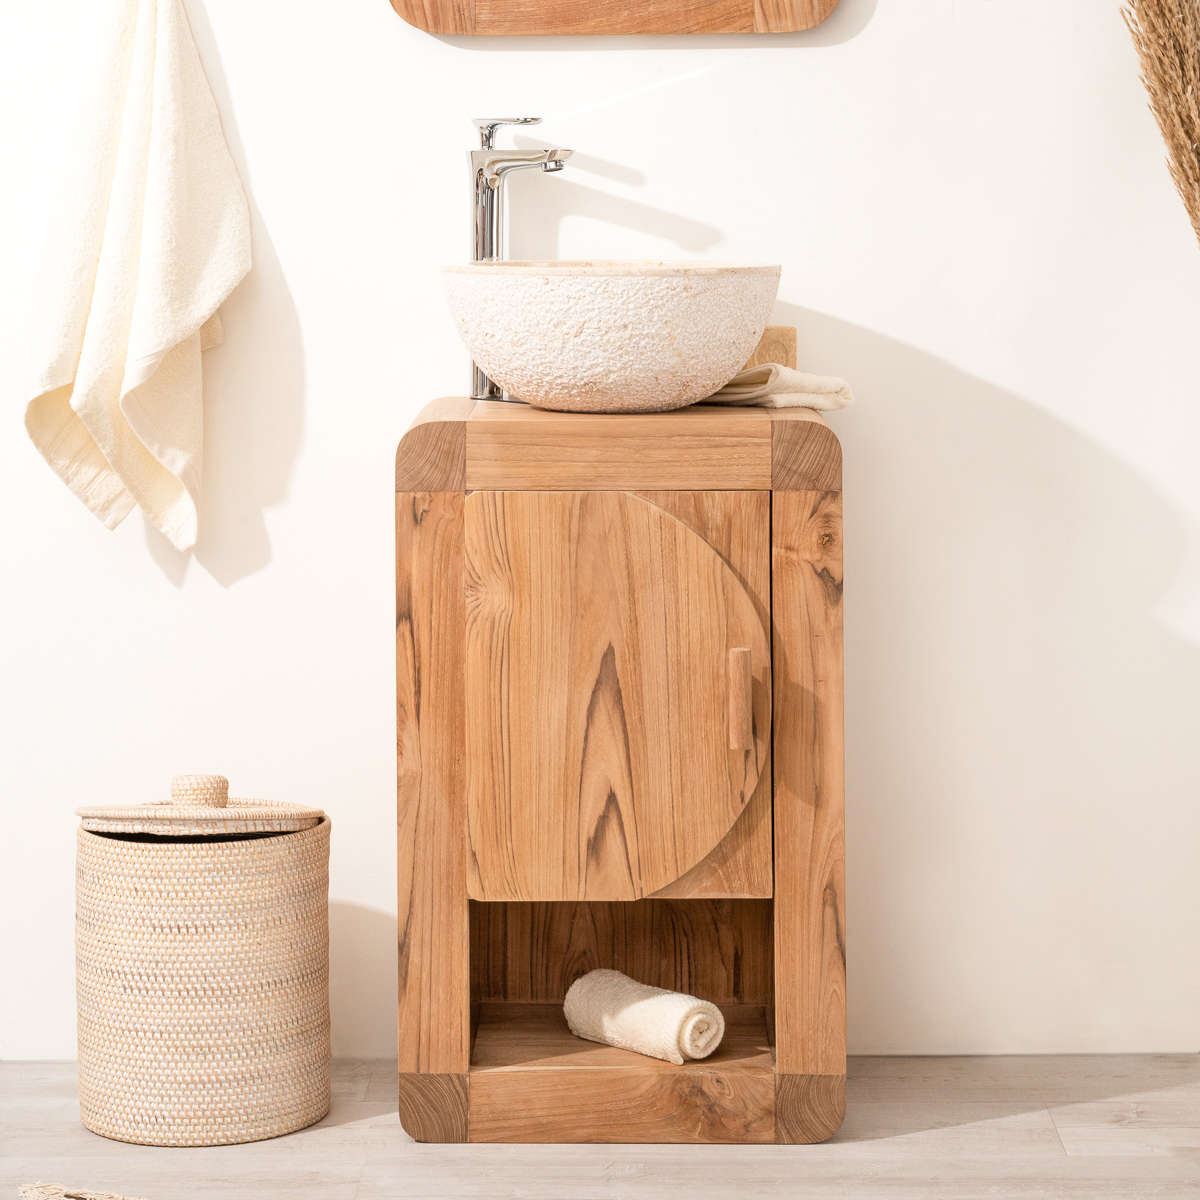 Meuble sous vasque simple vasque en bois teck massif contemporain rectangle naturel l - Meuble de salle de bain but ...